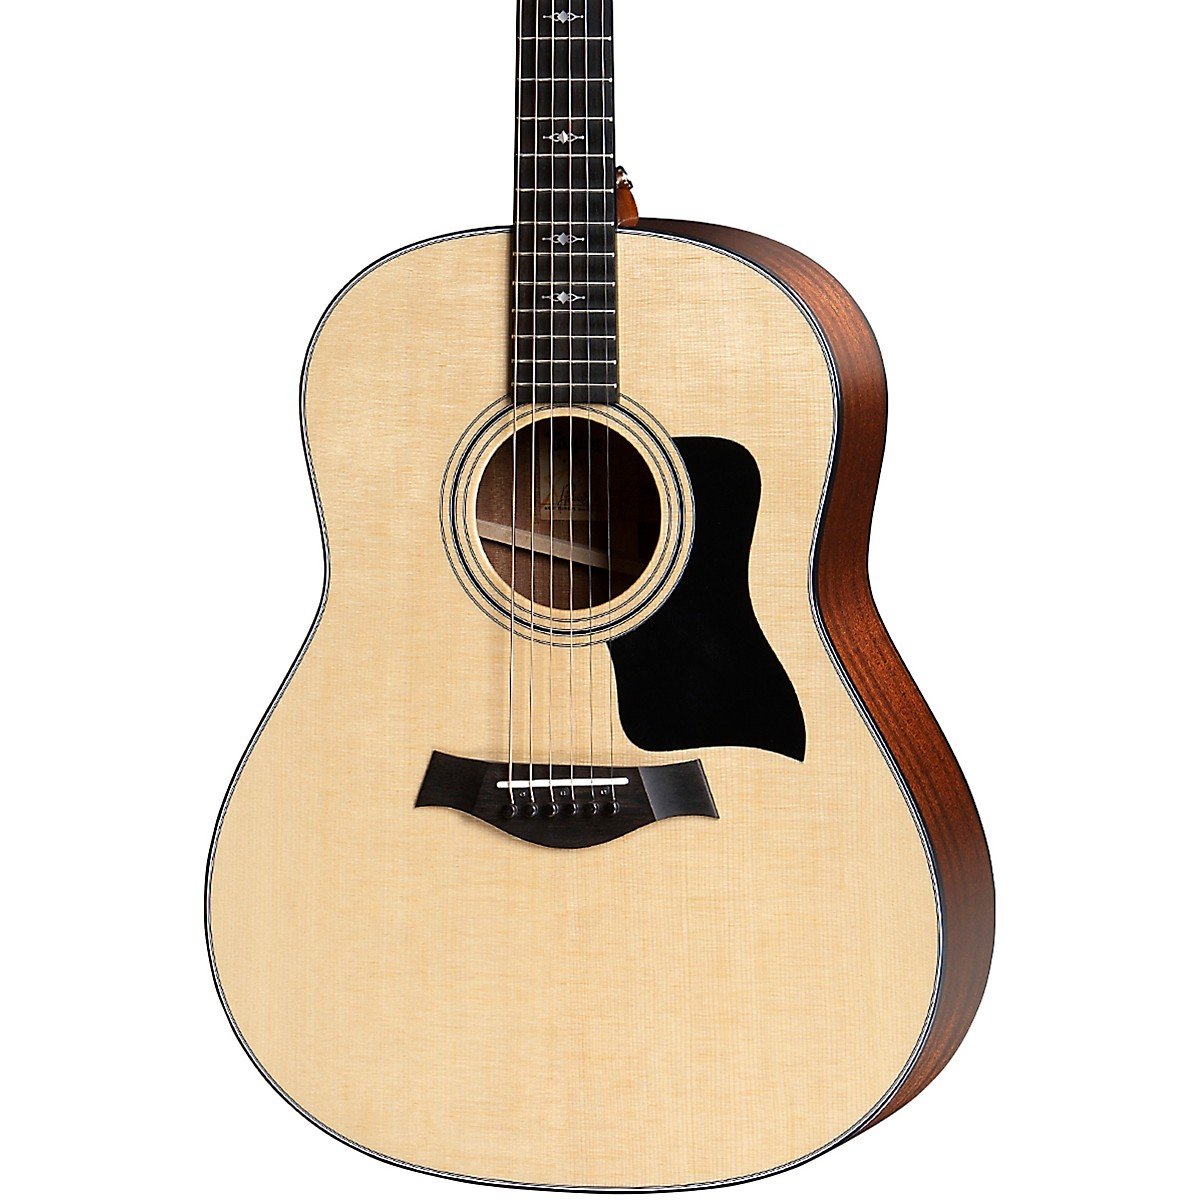 Taylor 317 Grand Pacific Dreadnought Acoustic Guitar